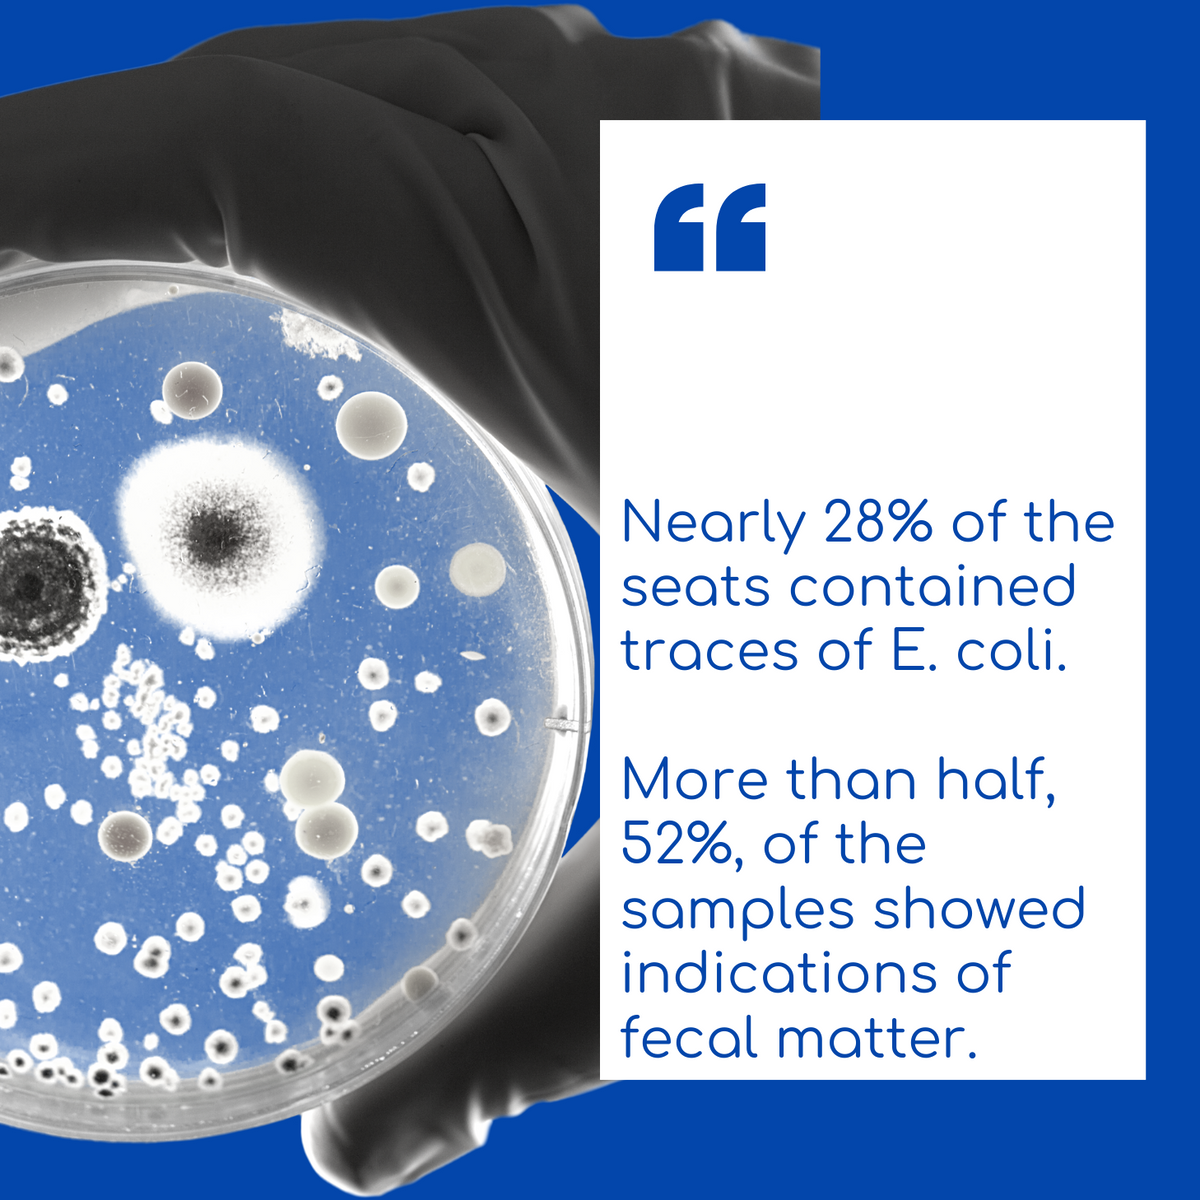 Nearly 28 percent of the seats contained traces of E. coli. More than half, 52 percent, of the samples showed indications of fecal matter.